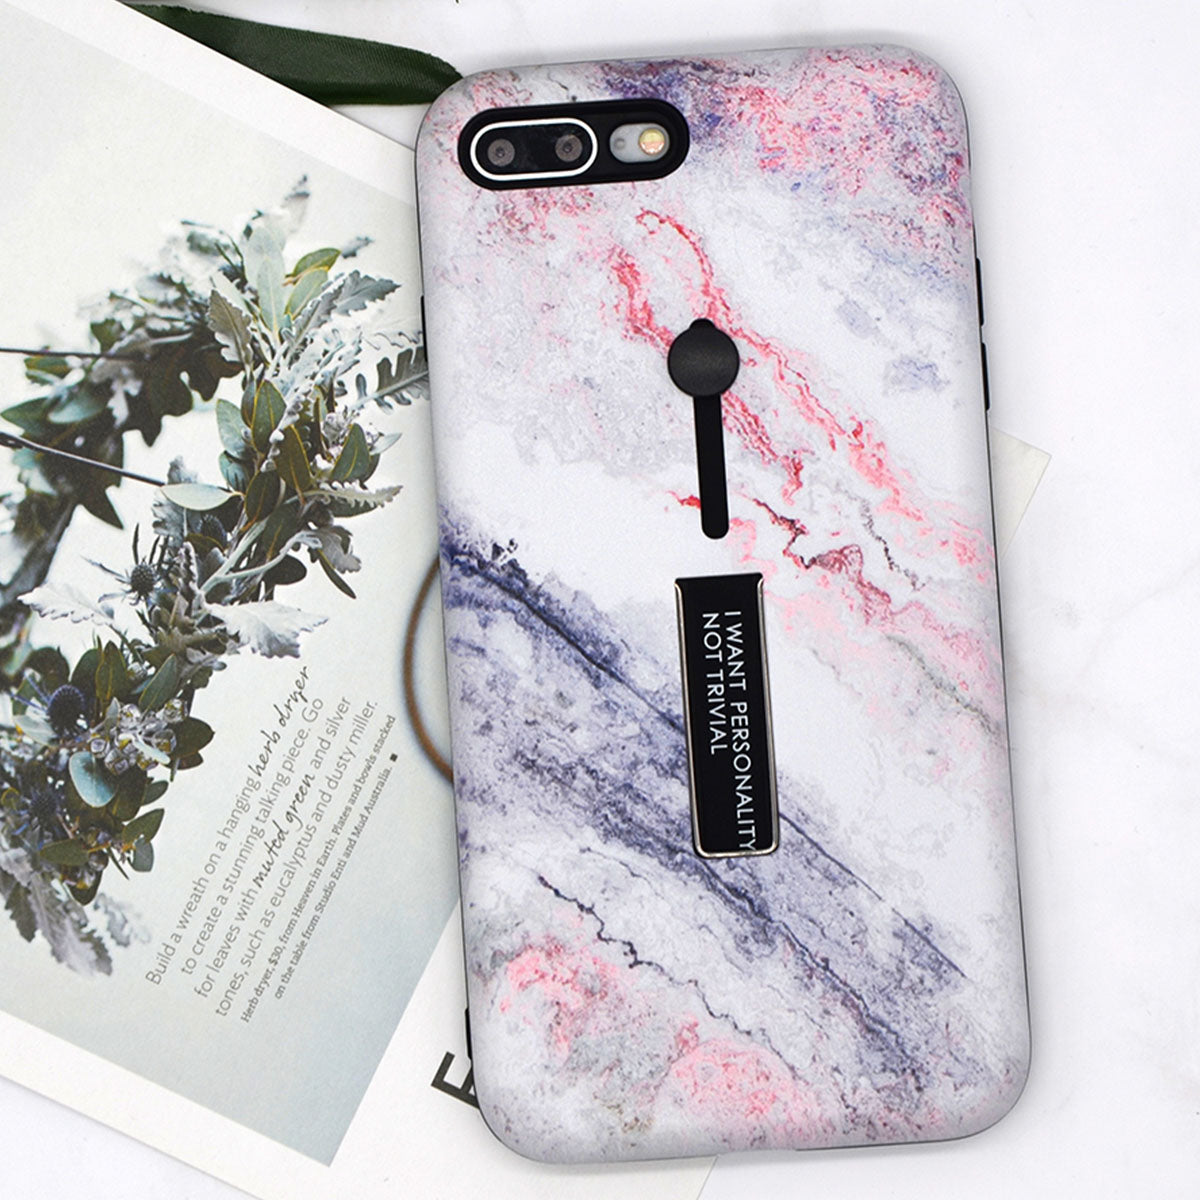 Lovely Marble Grip iPhone Case